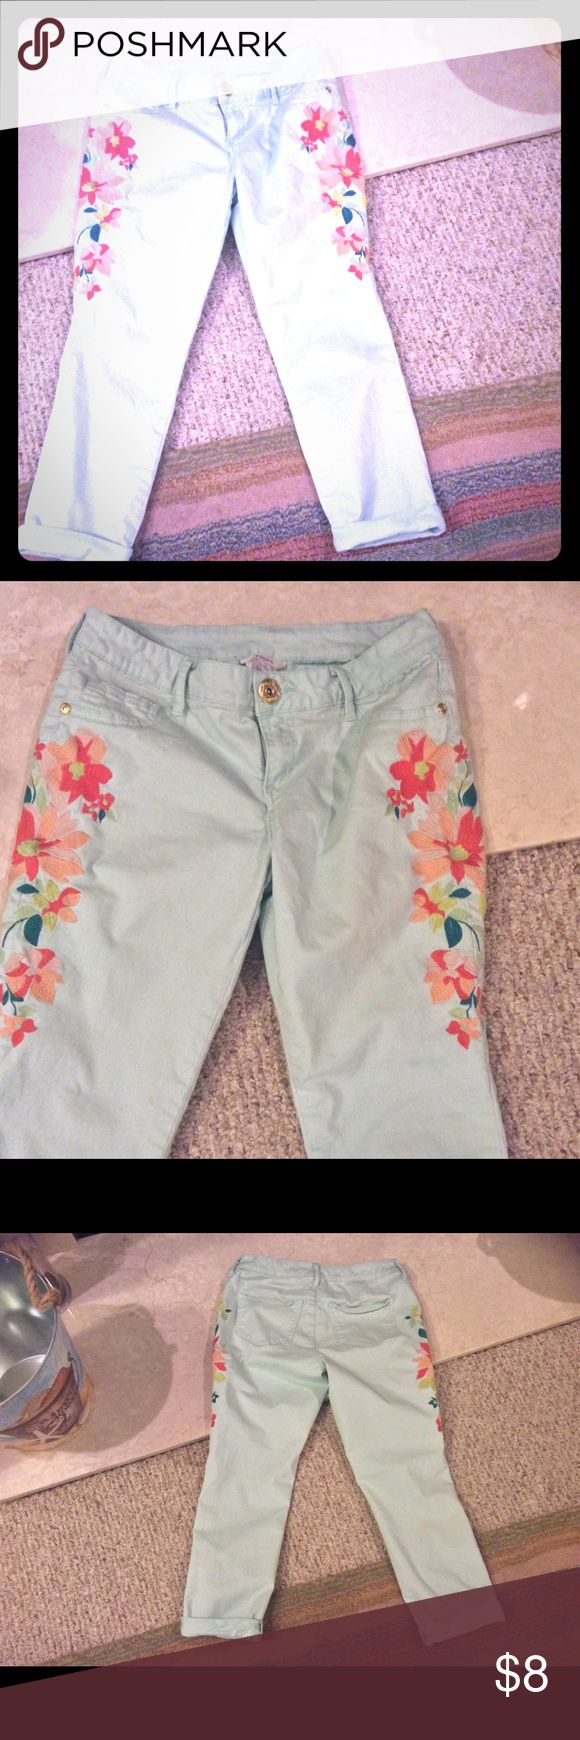 Candies floral capris size 7 Very good used condition.  Runs small.  Mint green in color. Candie's Pants Capris